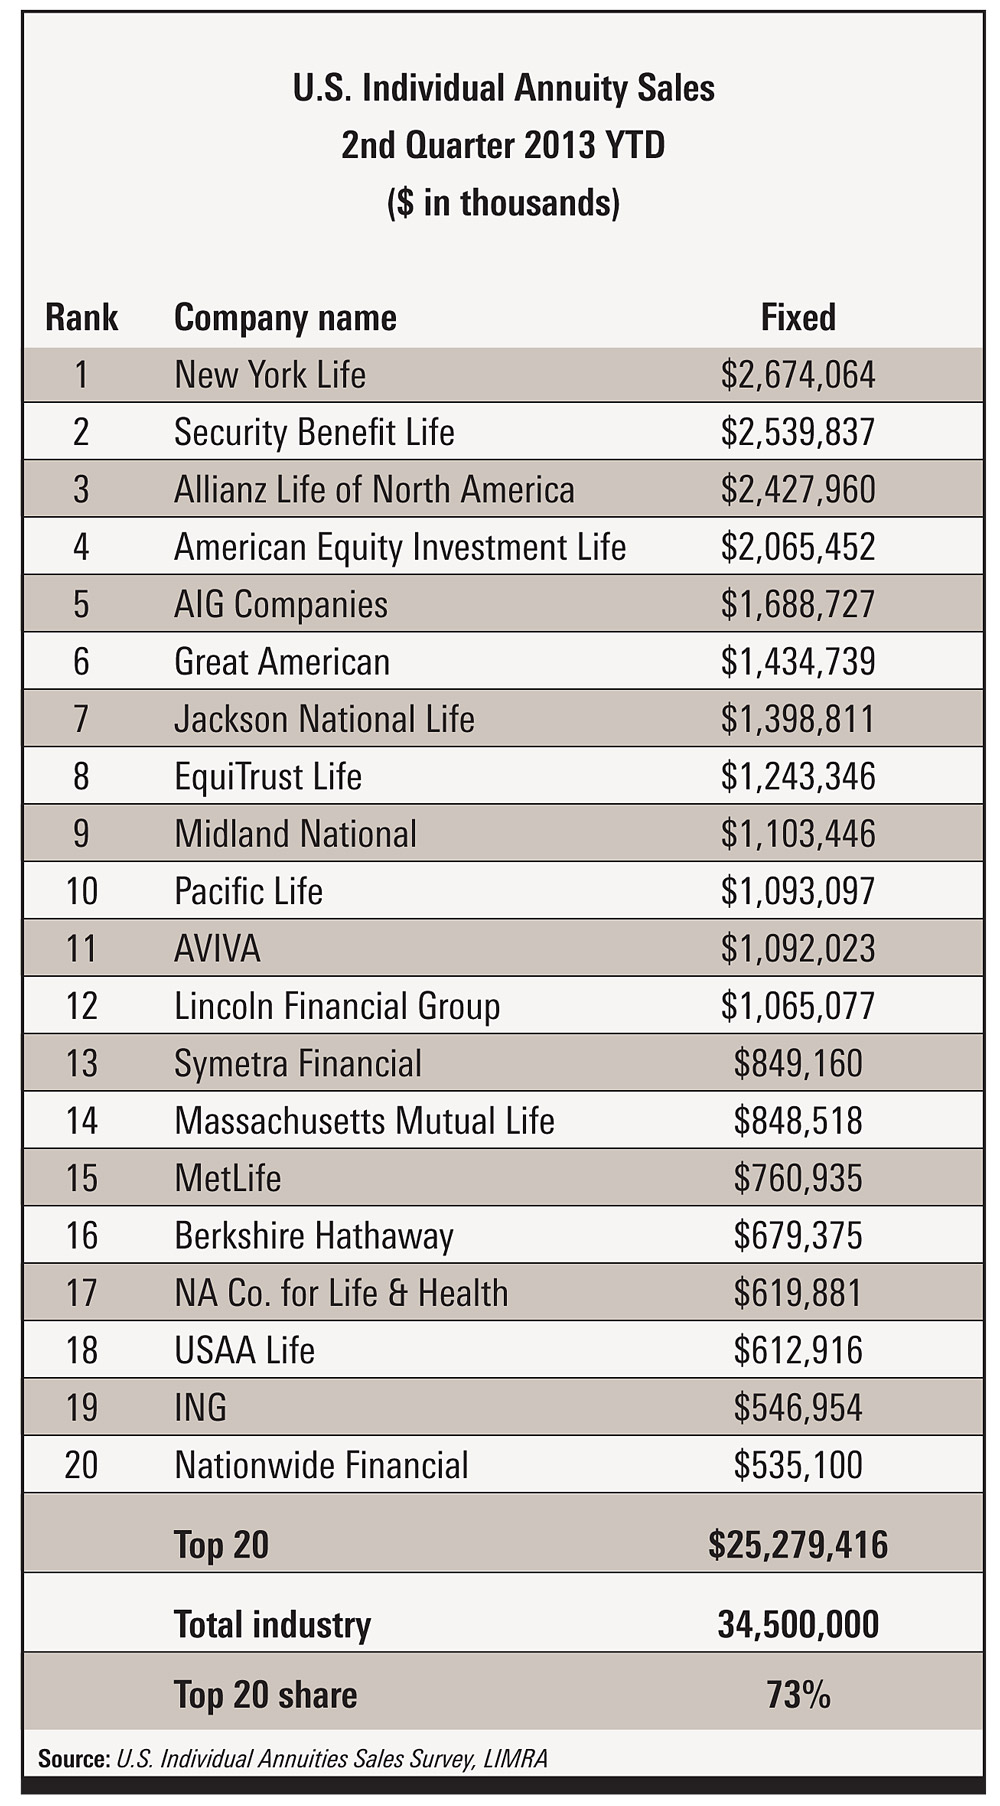 Top 20 companies for fixed annuity sales. Source: LIMRA